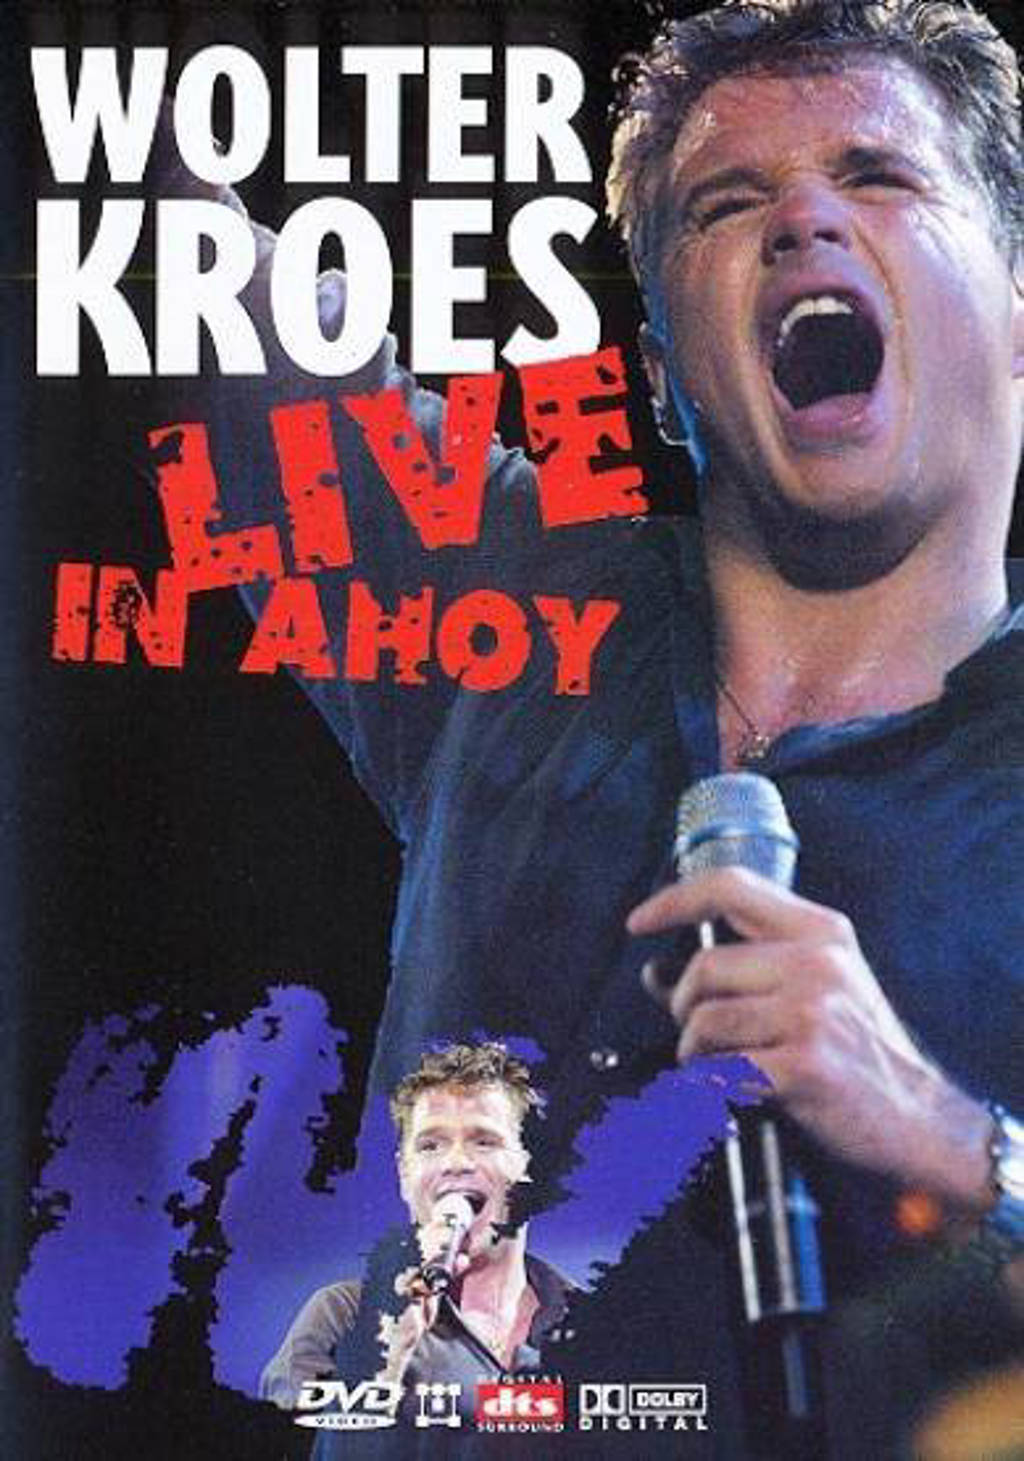 Wolter Kroes - Live in Ahoy (DVD)